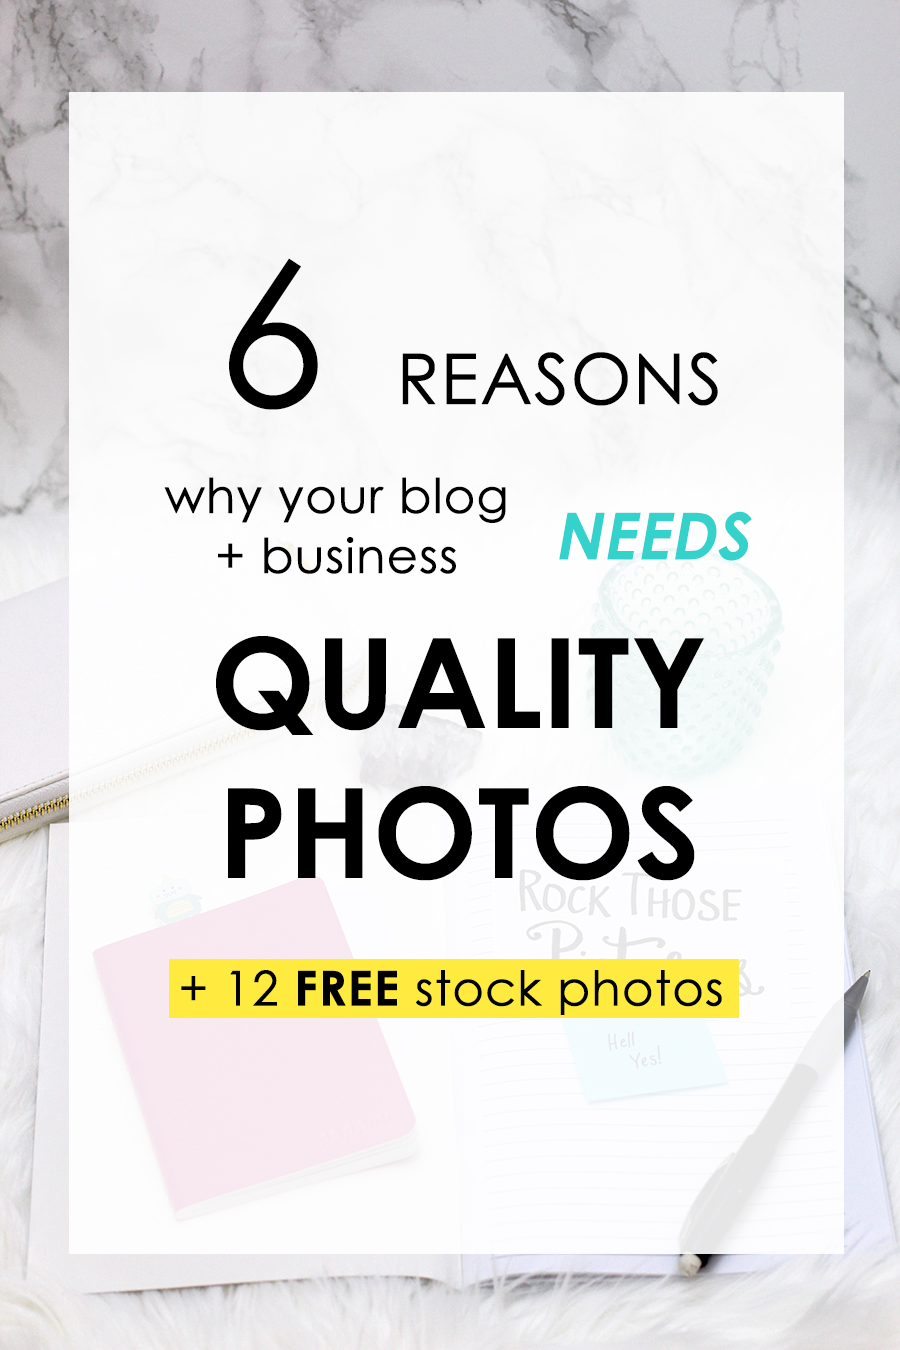 6 reasons why your blog and business needs quality photos + 12 free stock photos. Click through to read.